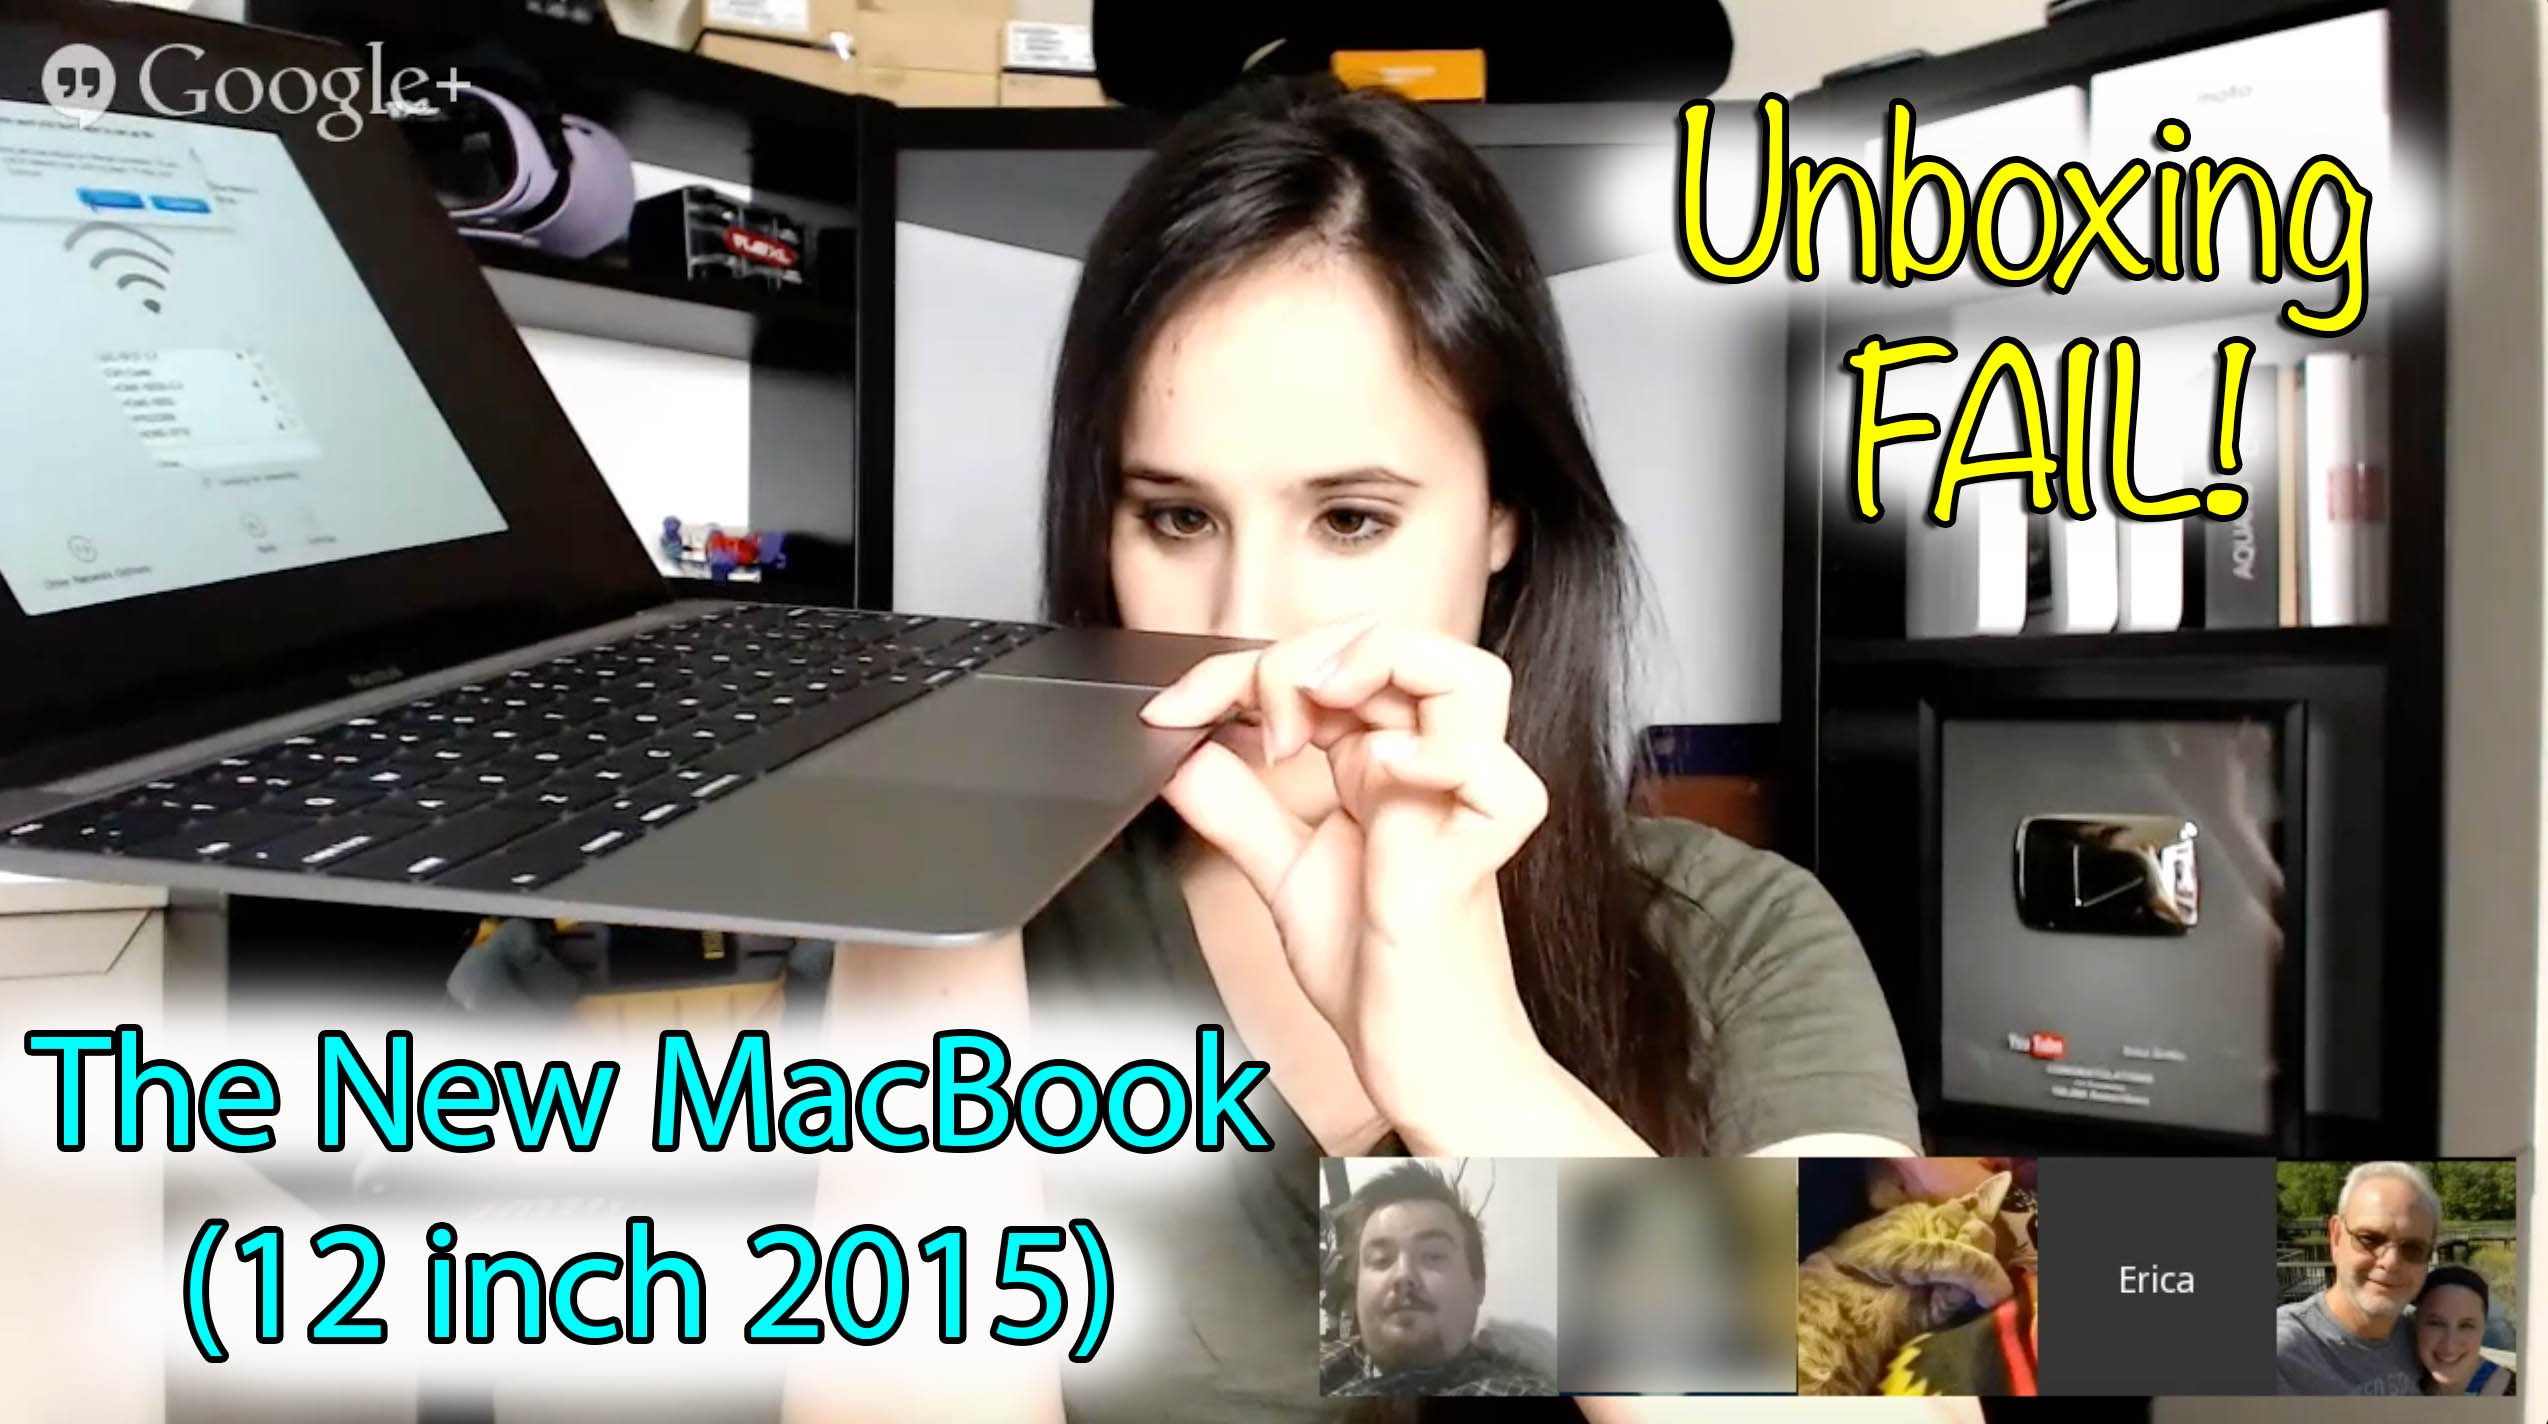 New MacBook 2015: Unboxing Fail/Google Hangout